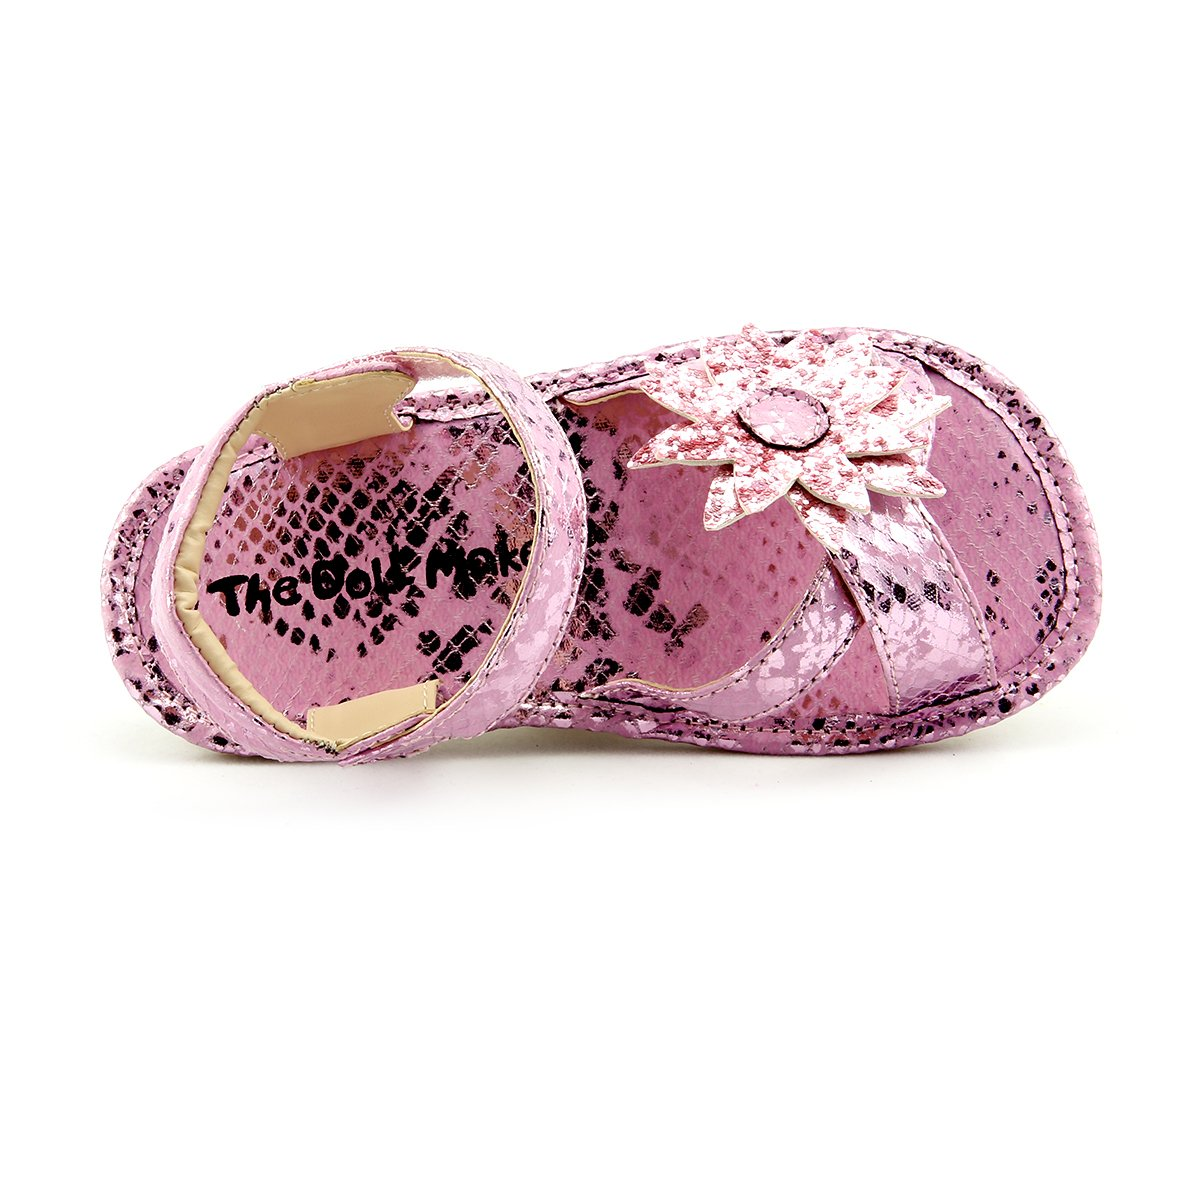 Toddler Size 8 Girls Metallic Brushed Croco Sandal Party Dress Shoes Sparkly Strap with Flower Pink